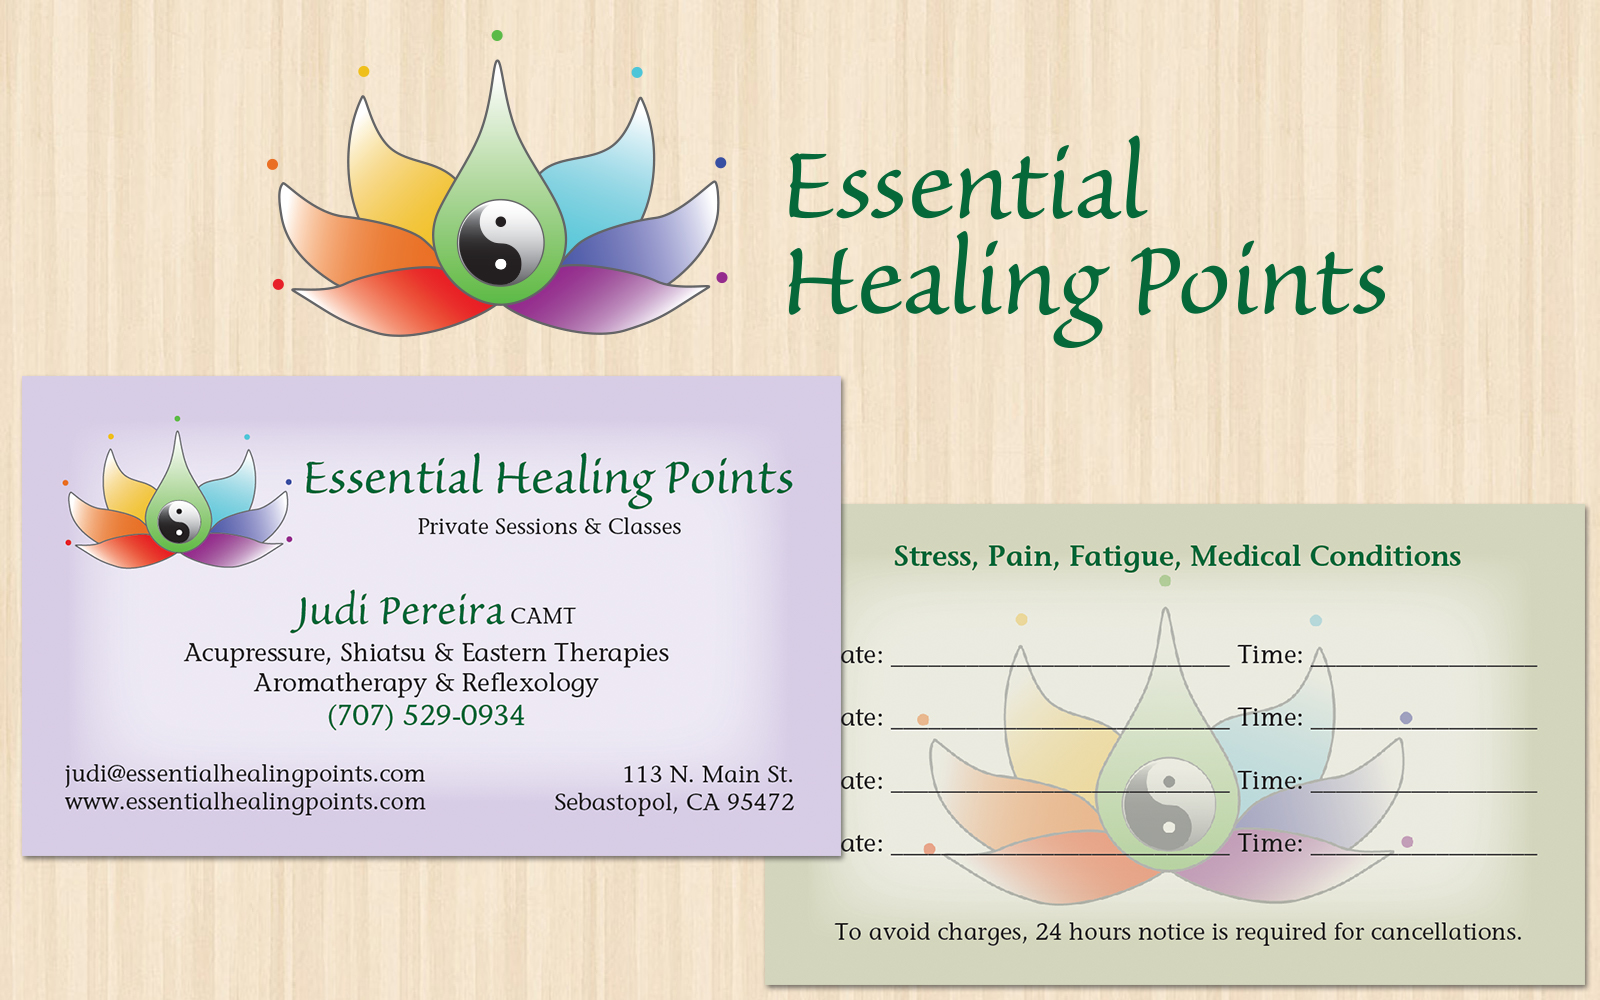 Essential Healing Points Logo And Business Card